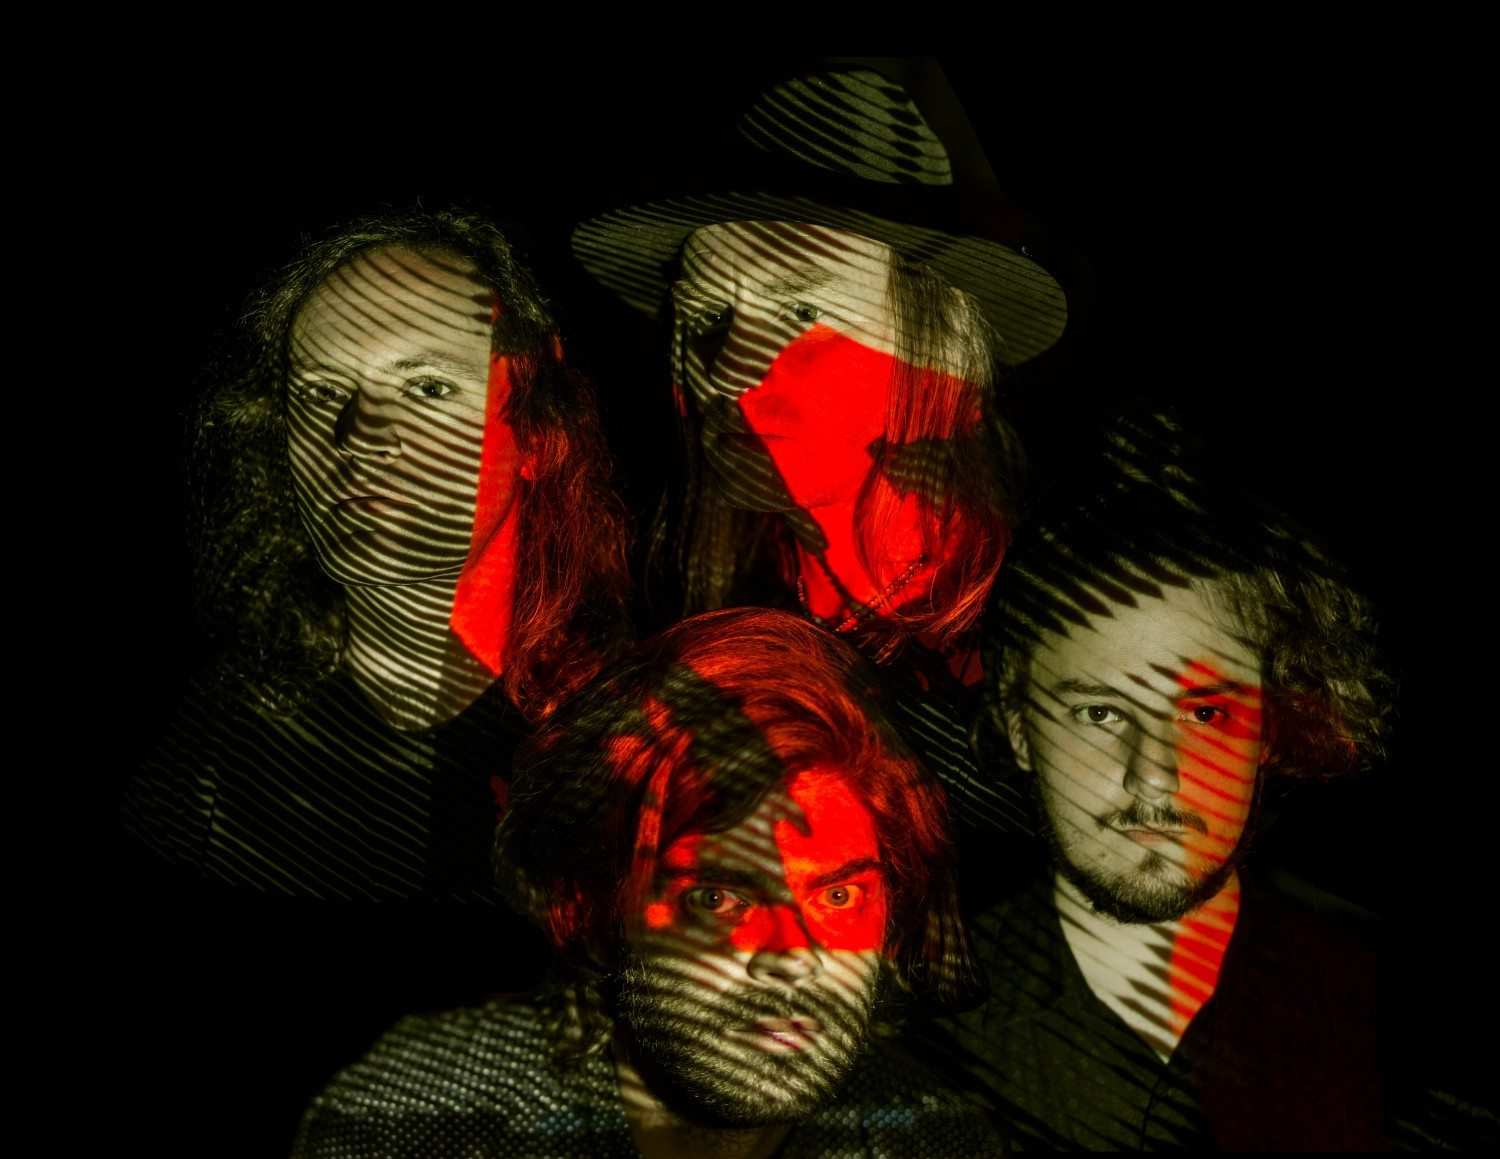 The Faint's Todd Fink on playing Webster Hall on Oct. 6 with Gang Of Four, new music, side projects & more